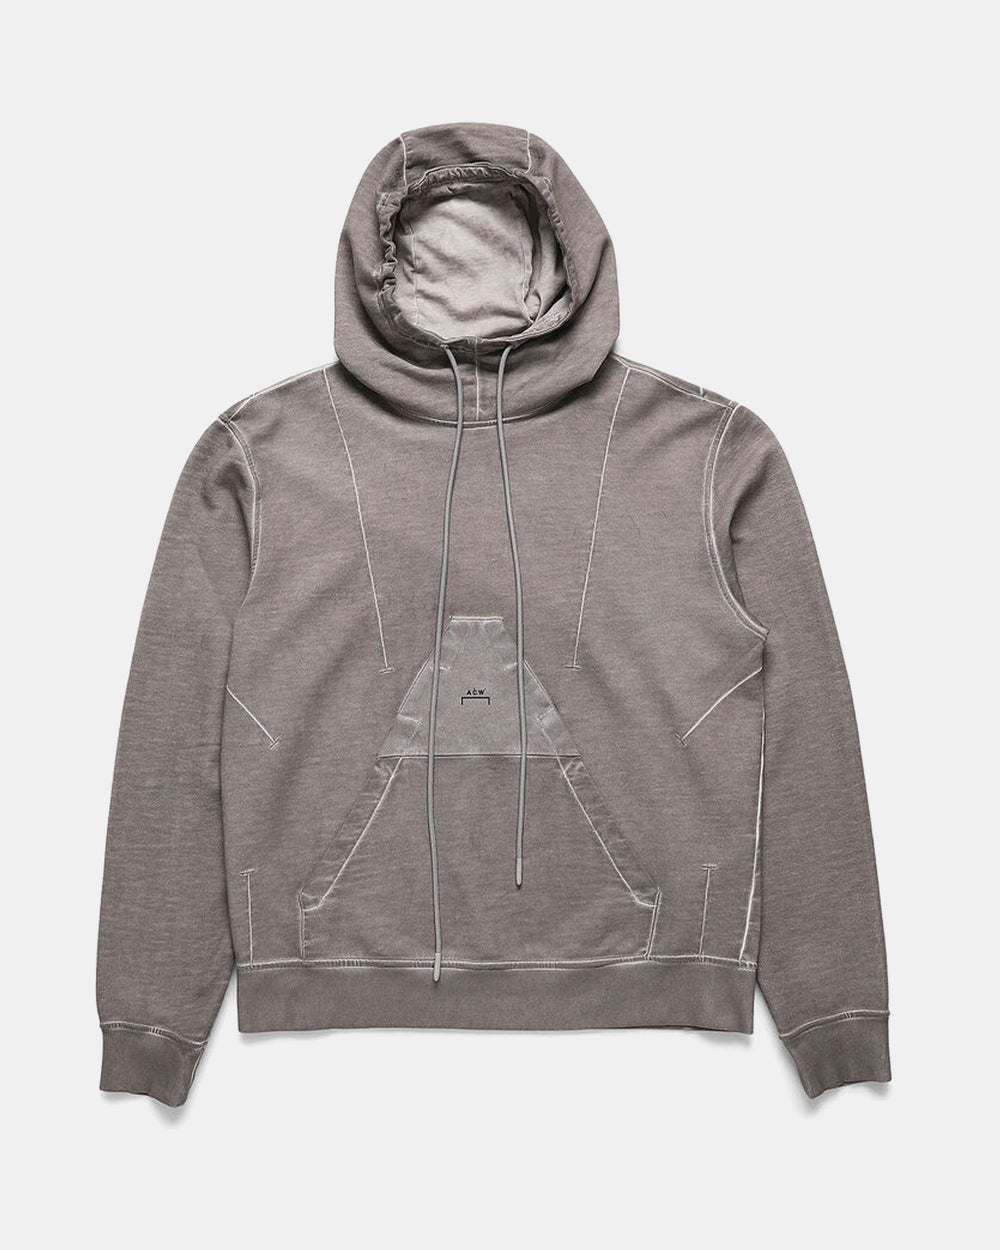 ACW x Diesel - Overdyed Hoodie (Light Grey)